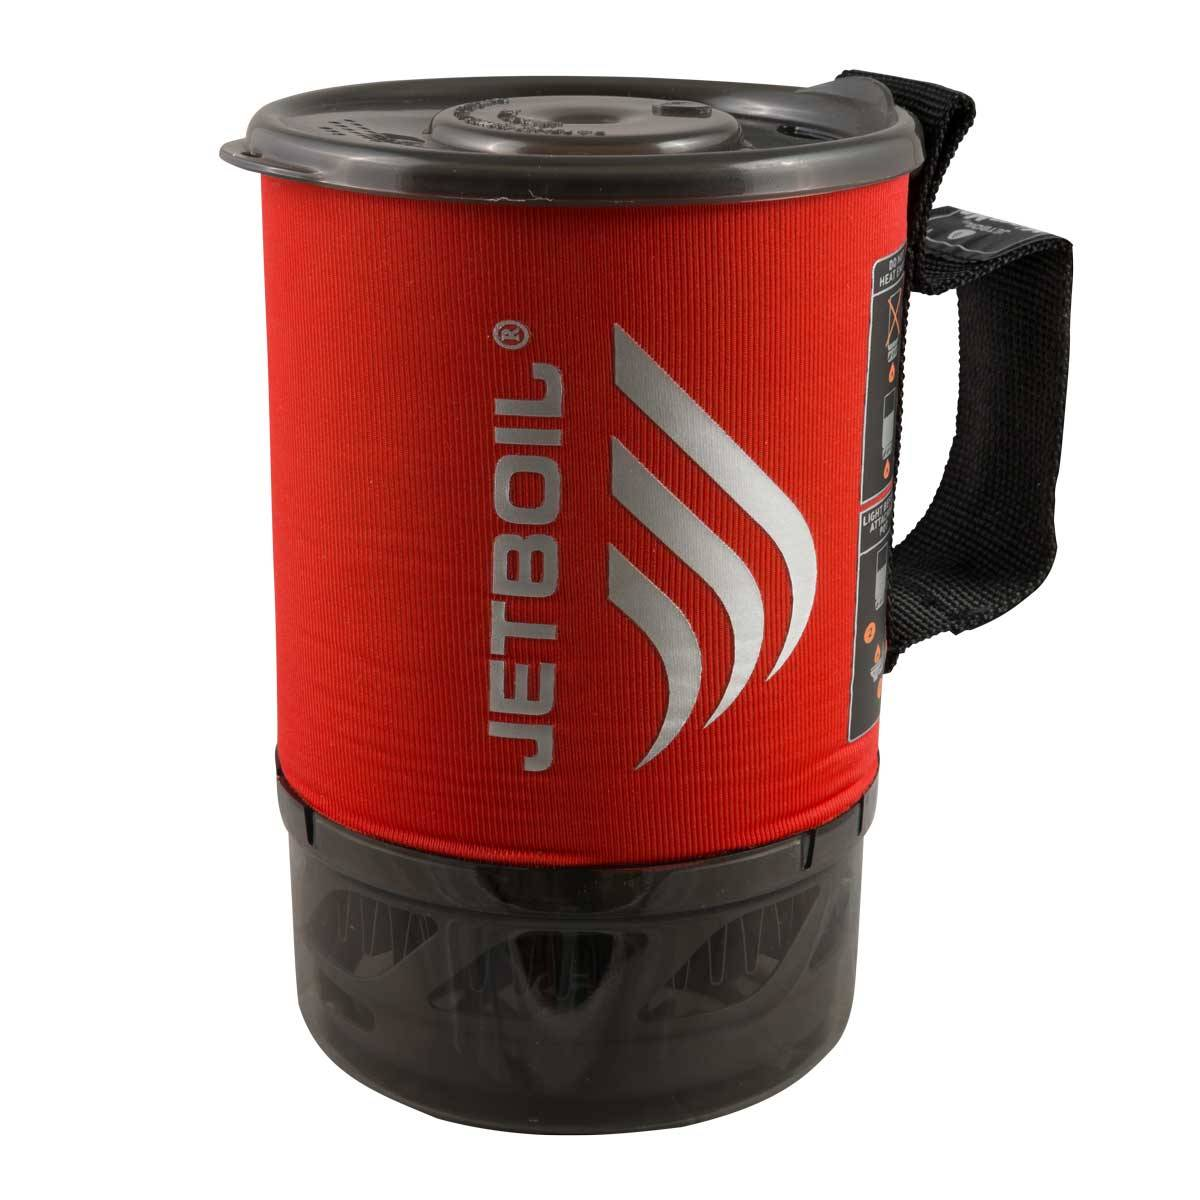 Jetboil Cook System Micromo Tamale